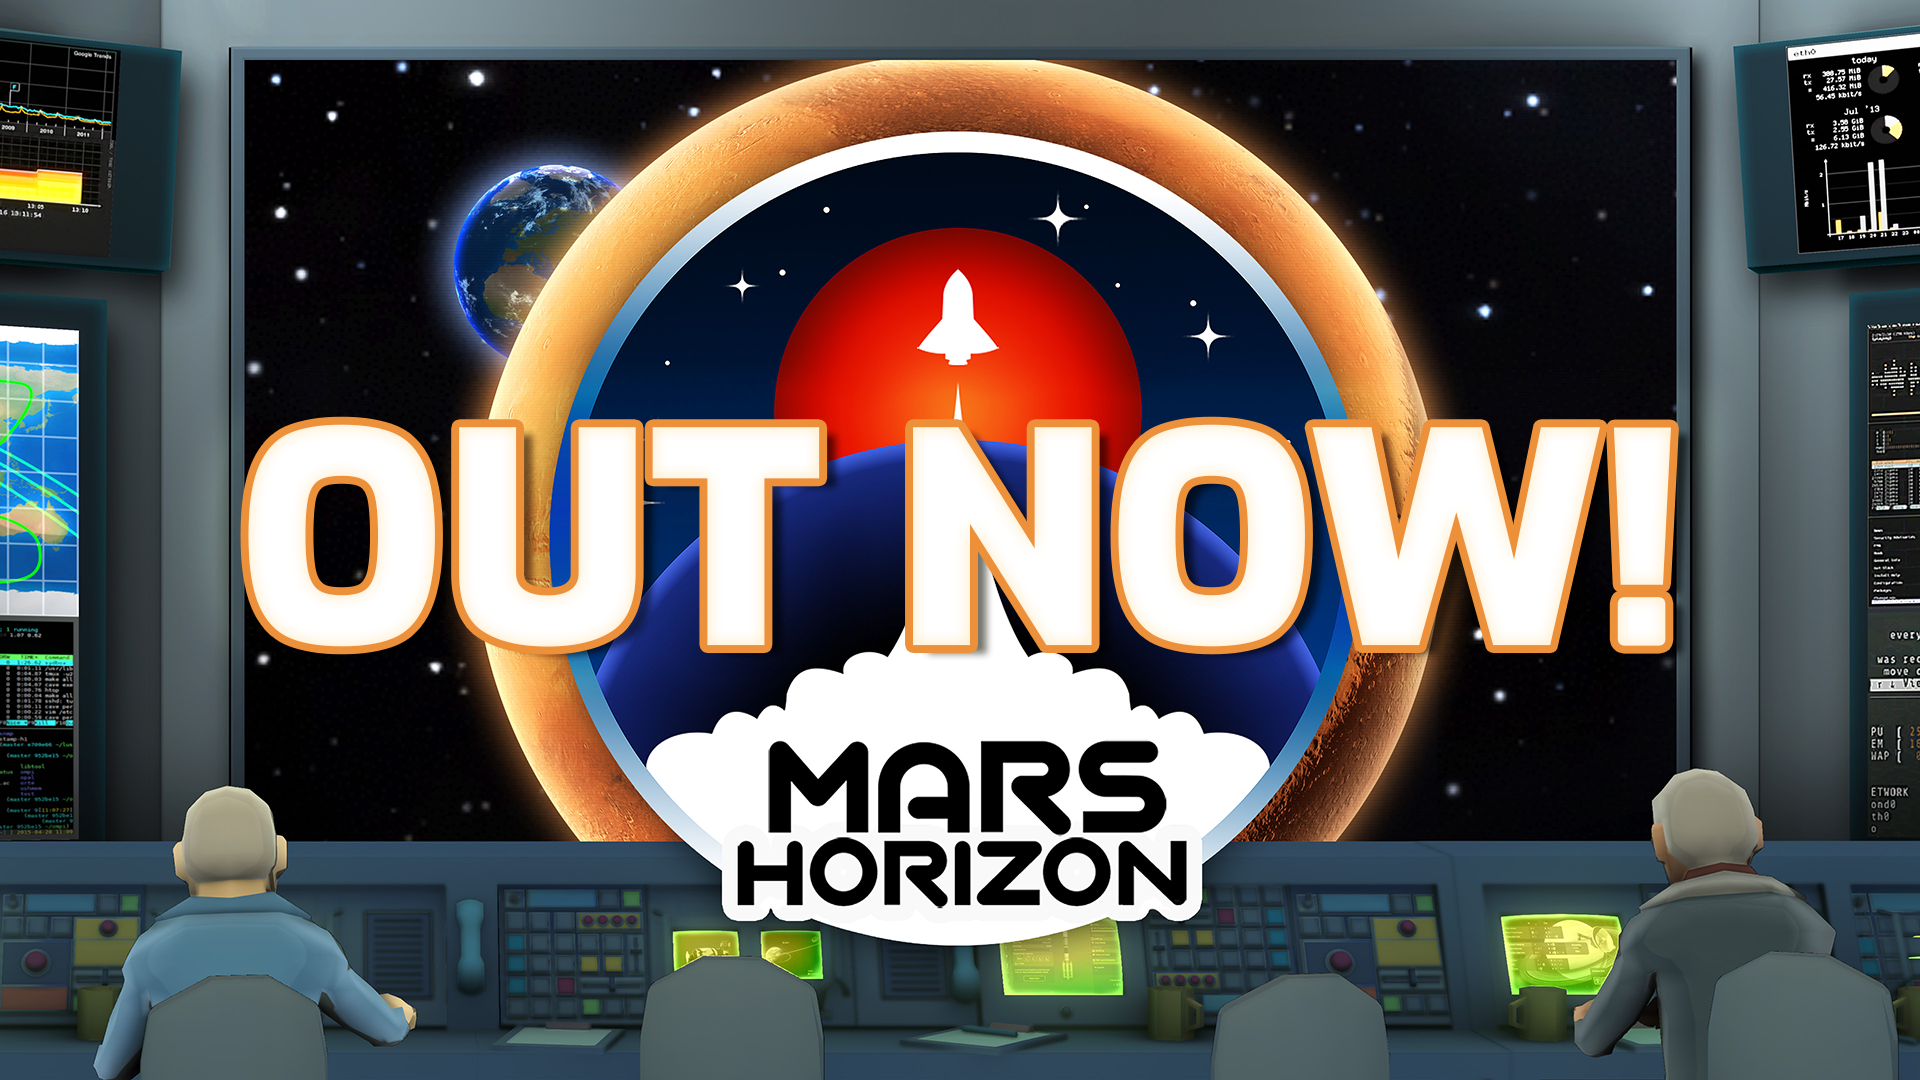 Mars Horizon is OUT NOW! 🚀